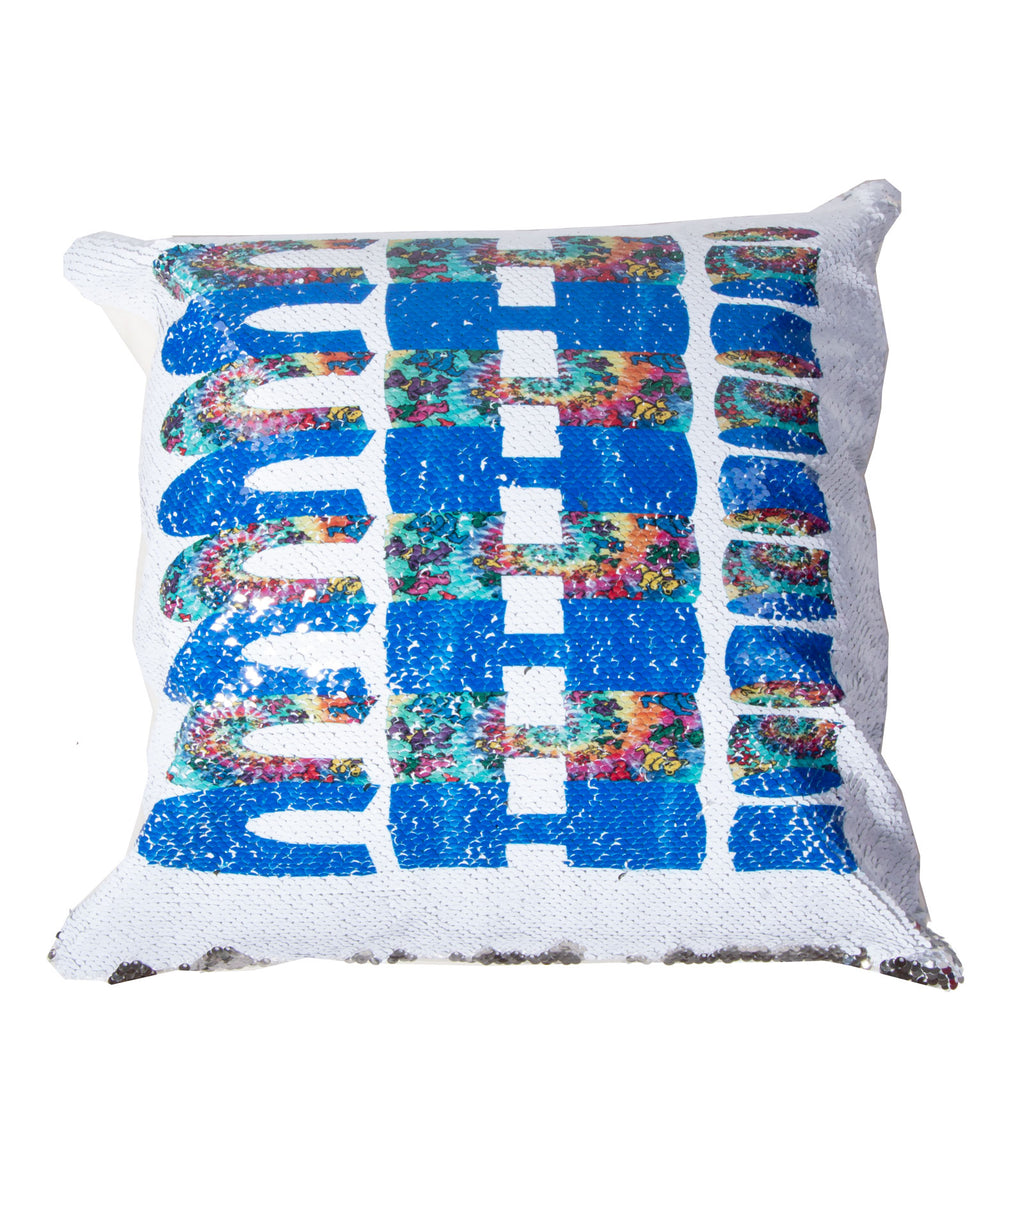 Truly Whimsical Reverse Sequin Pillow Repeat Pattern